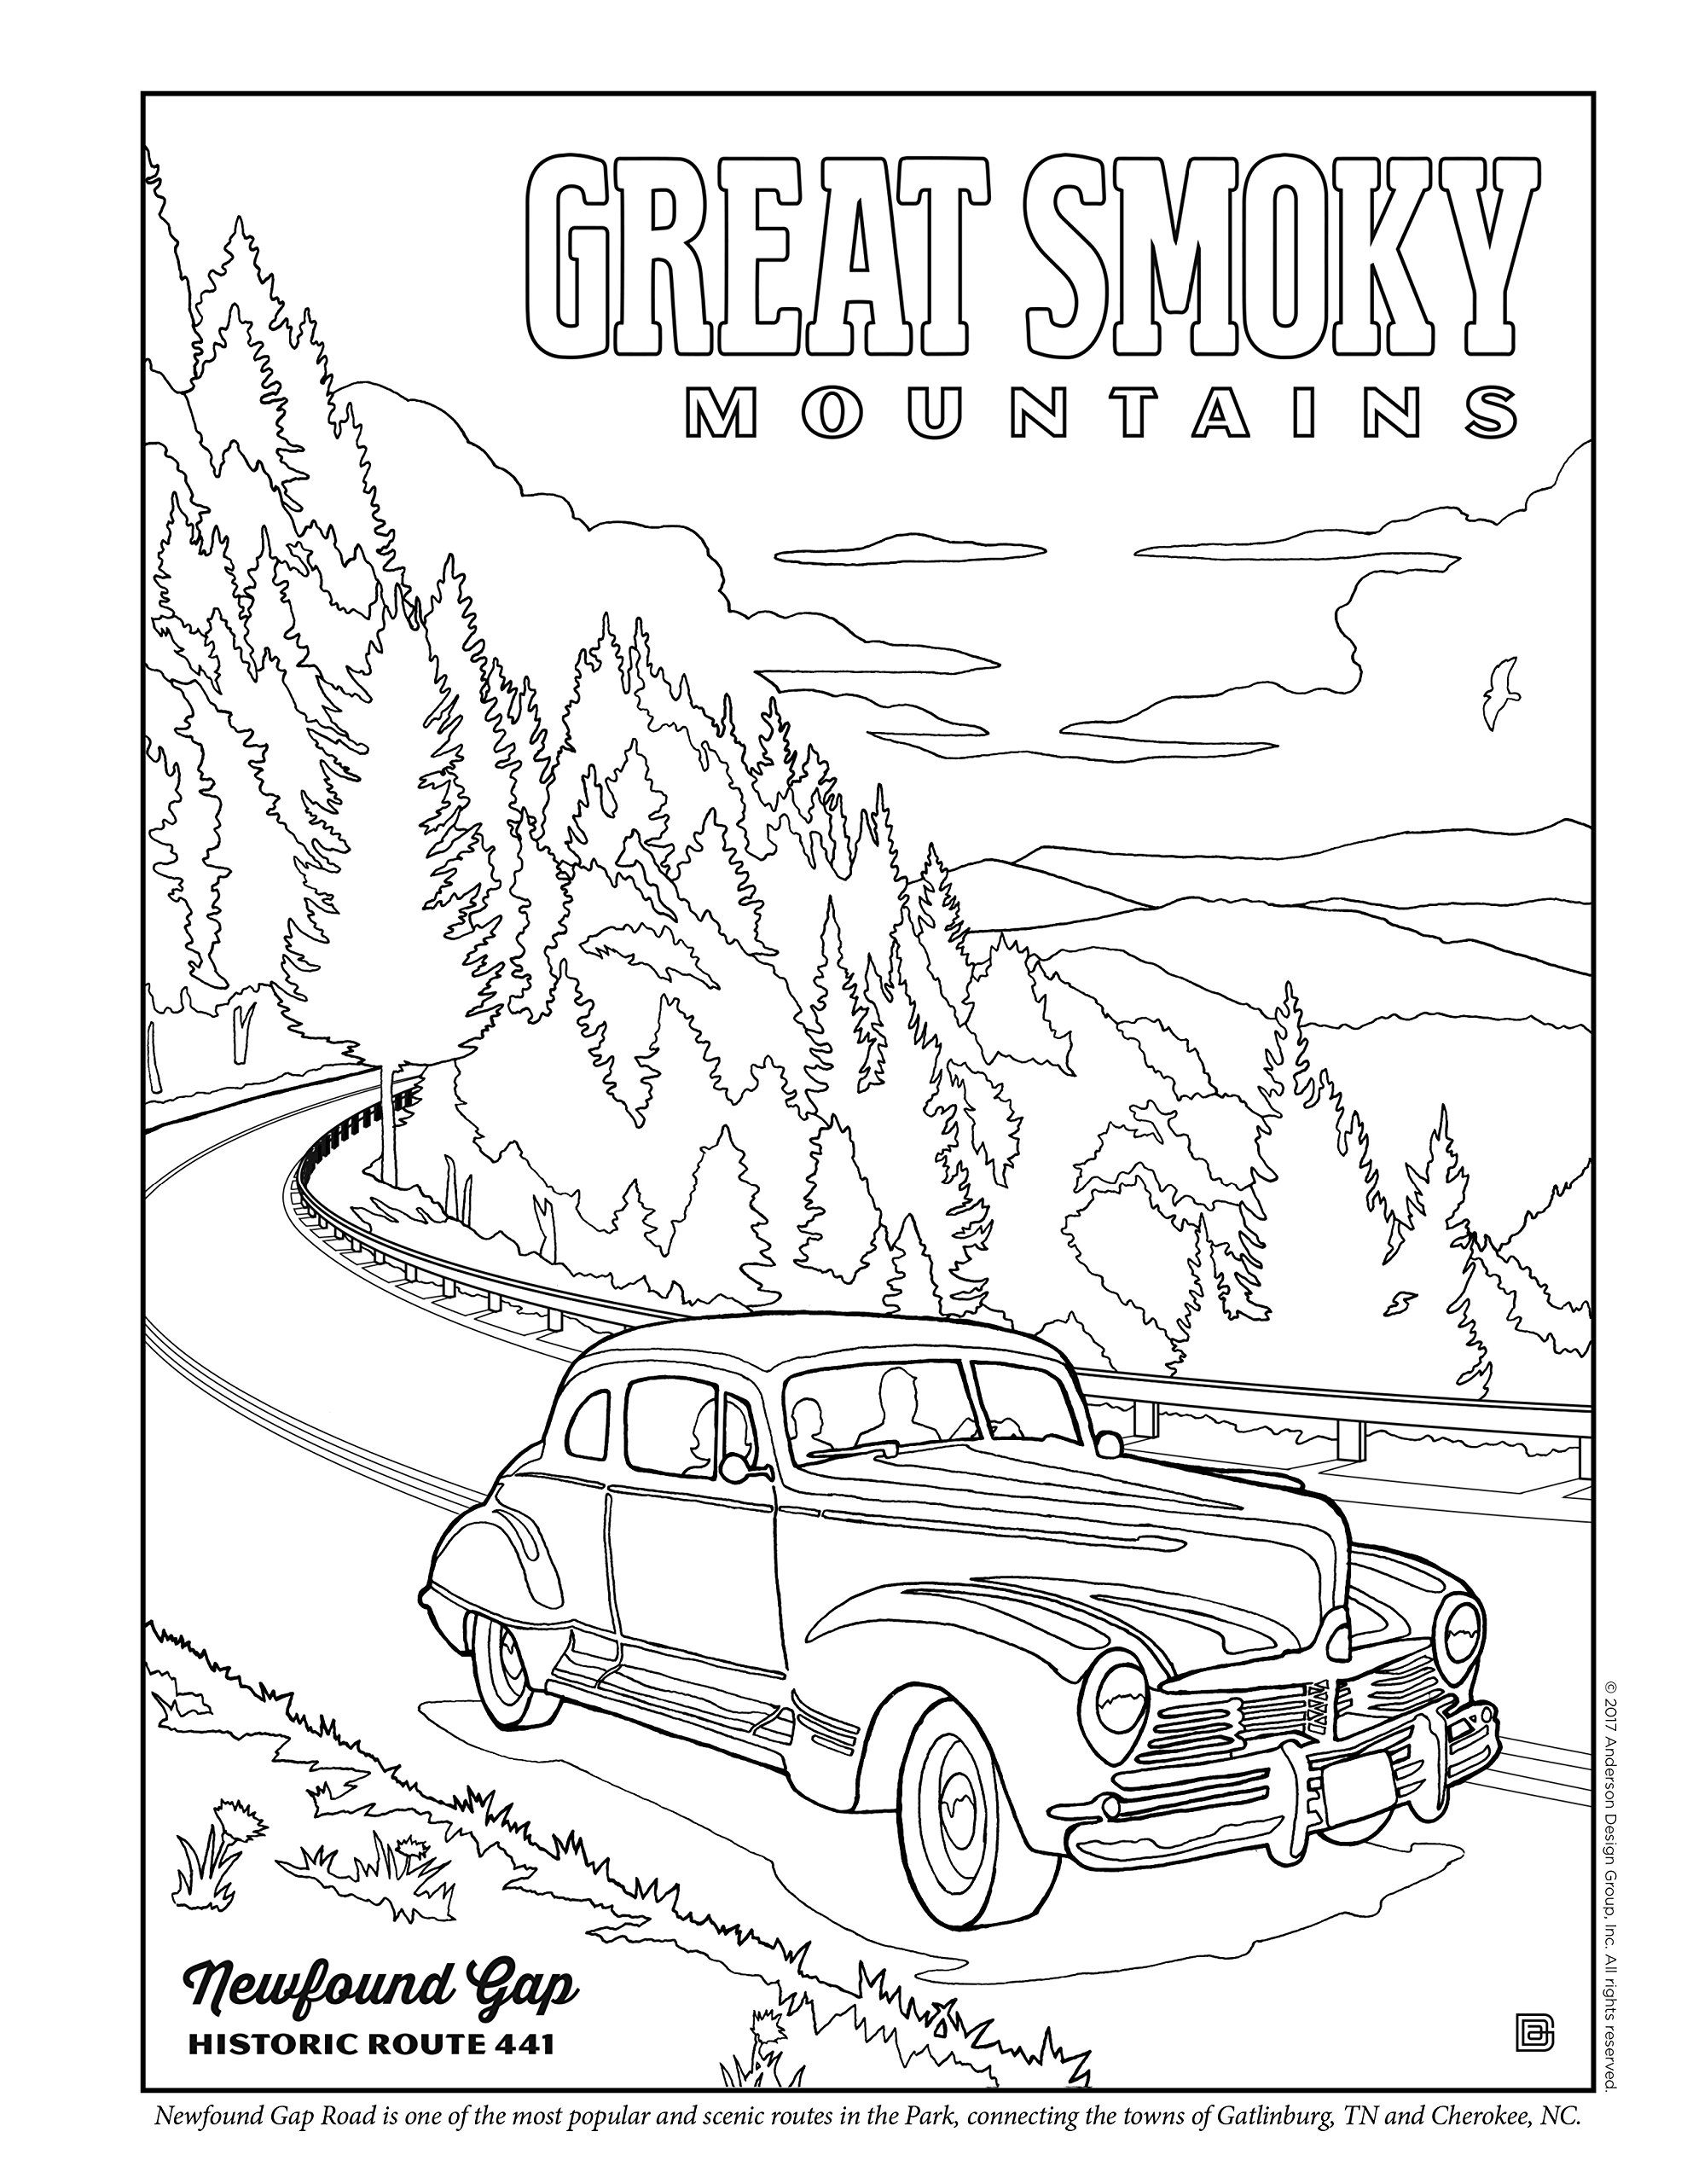 illustrated guide to great smoky mountains coloring book anderson Gatlinburg TN Wedding illustrated guide to great smoky mountains coloring book anderson design group 9780996777766 amazon books